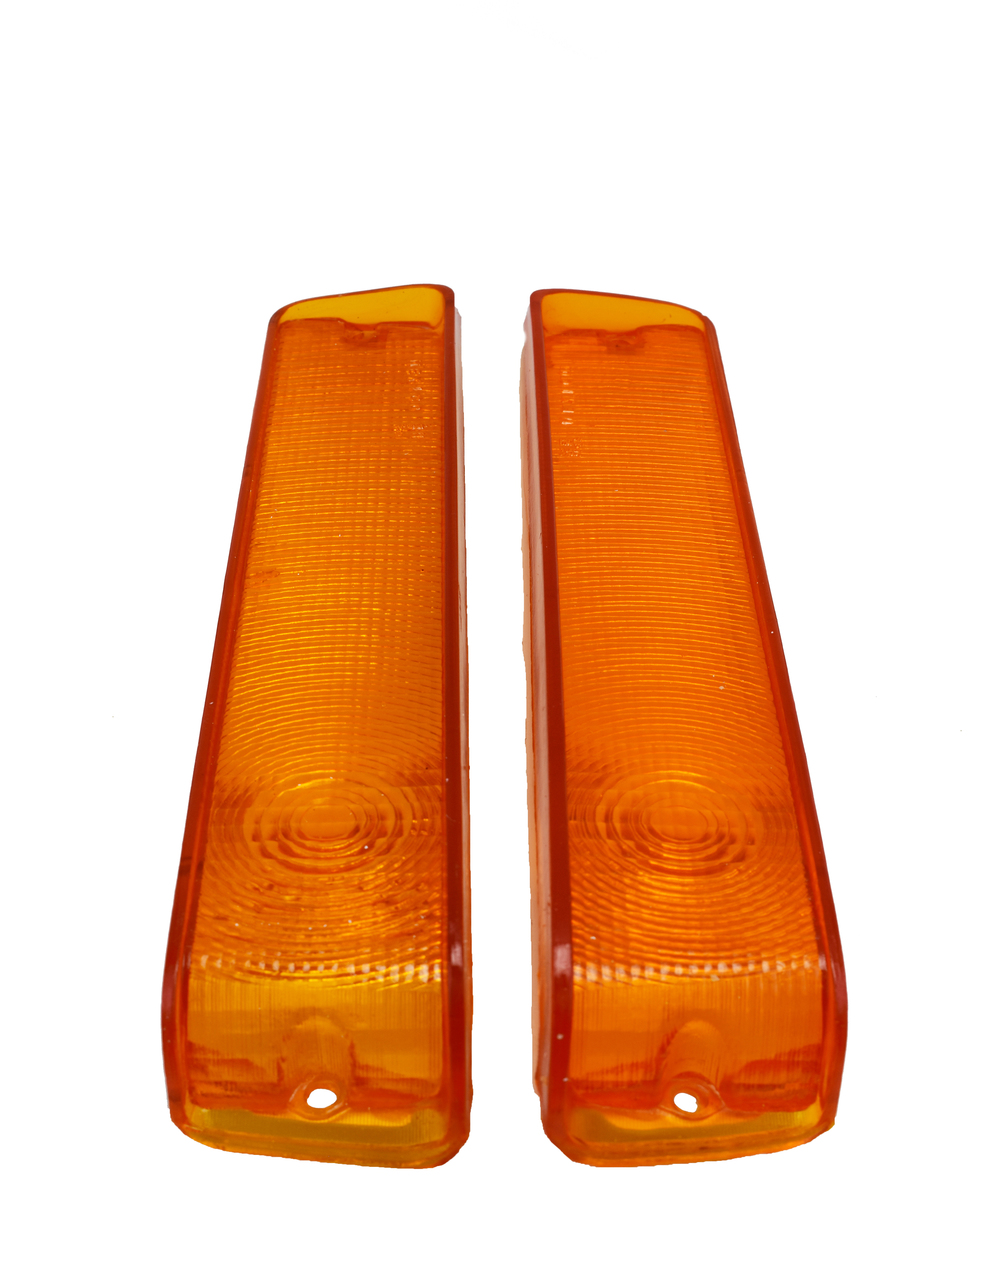 A-Team Performance 73 74 75 76 77 78 79 FORD F-150 F150 Truck Front Turn Signal Lights 78 79 Bronco